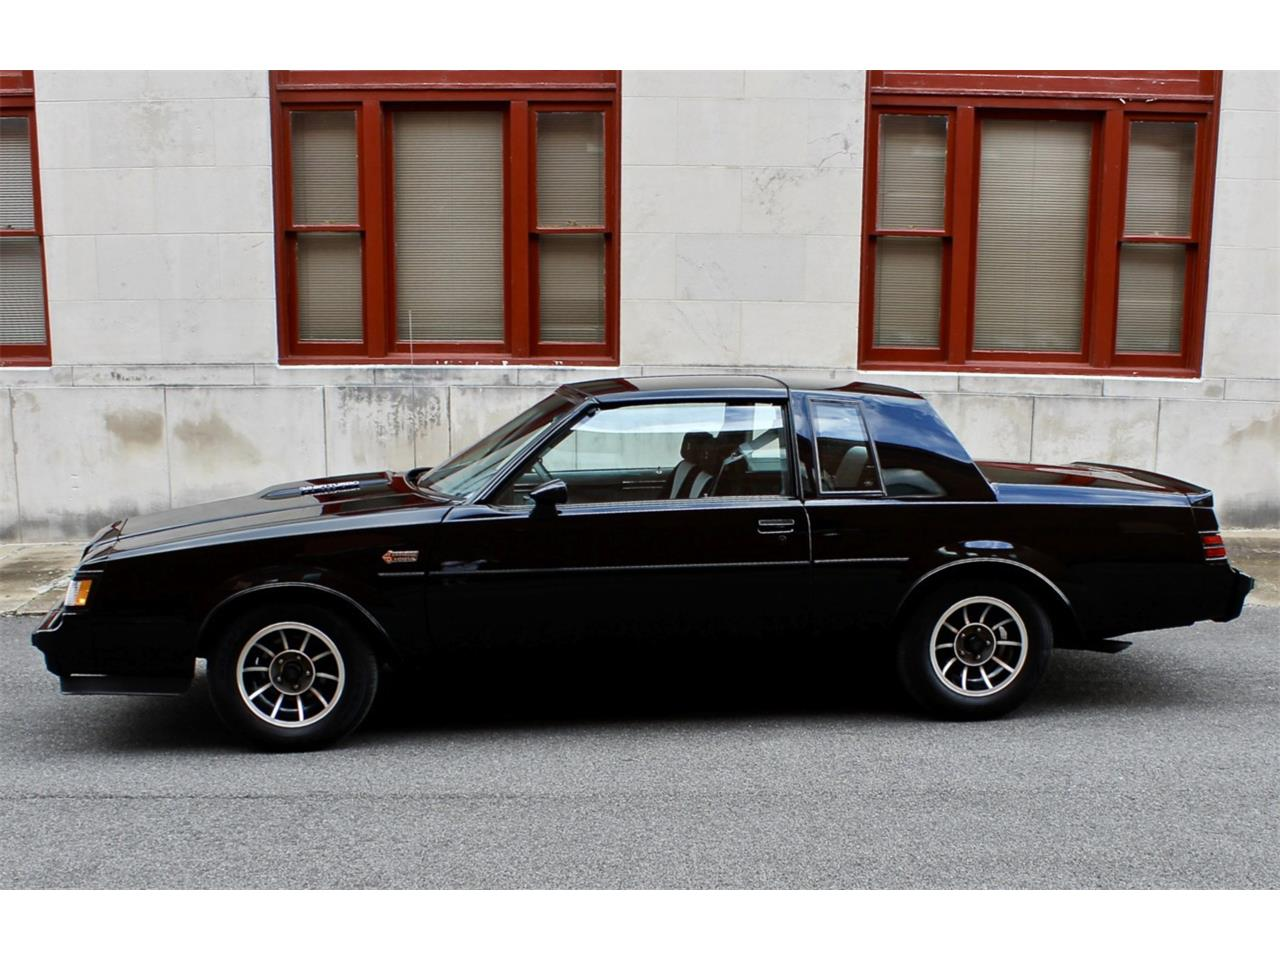 Large Picture of 1985 Buick Grand National located in Alabama Auction Vehicle Offered by Bring A Trailer - PSSW